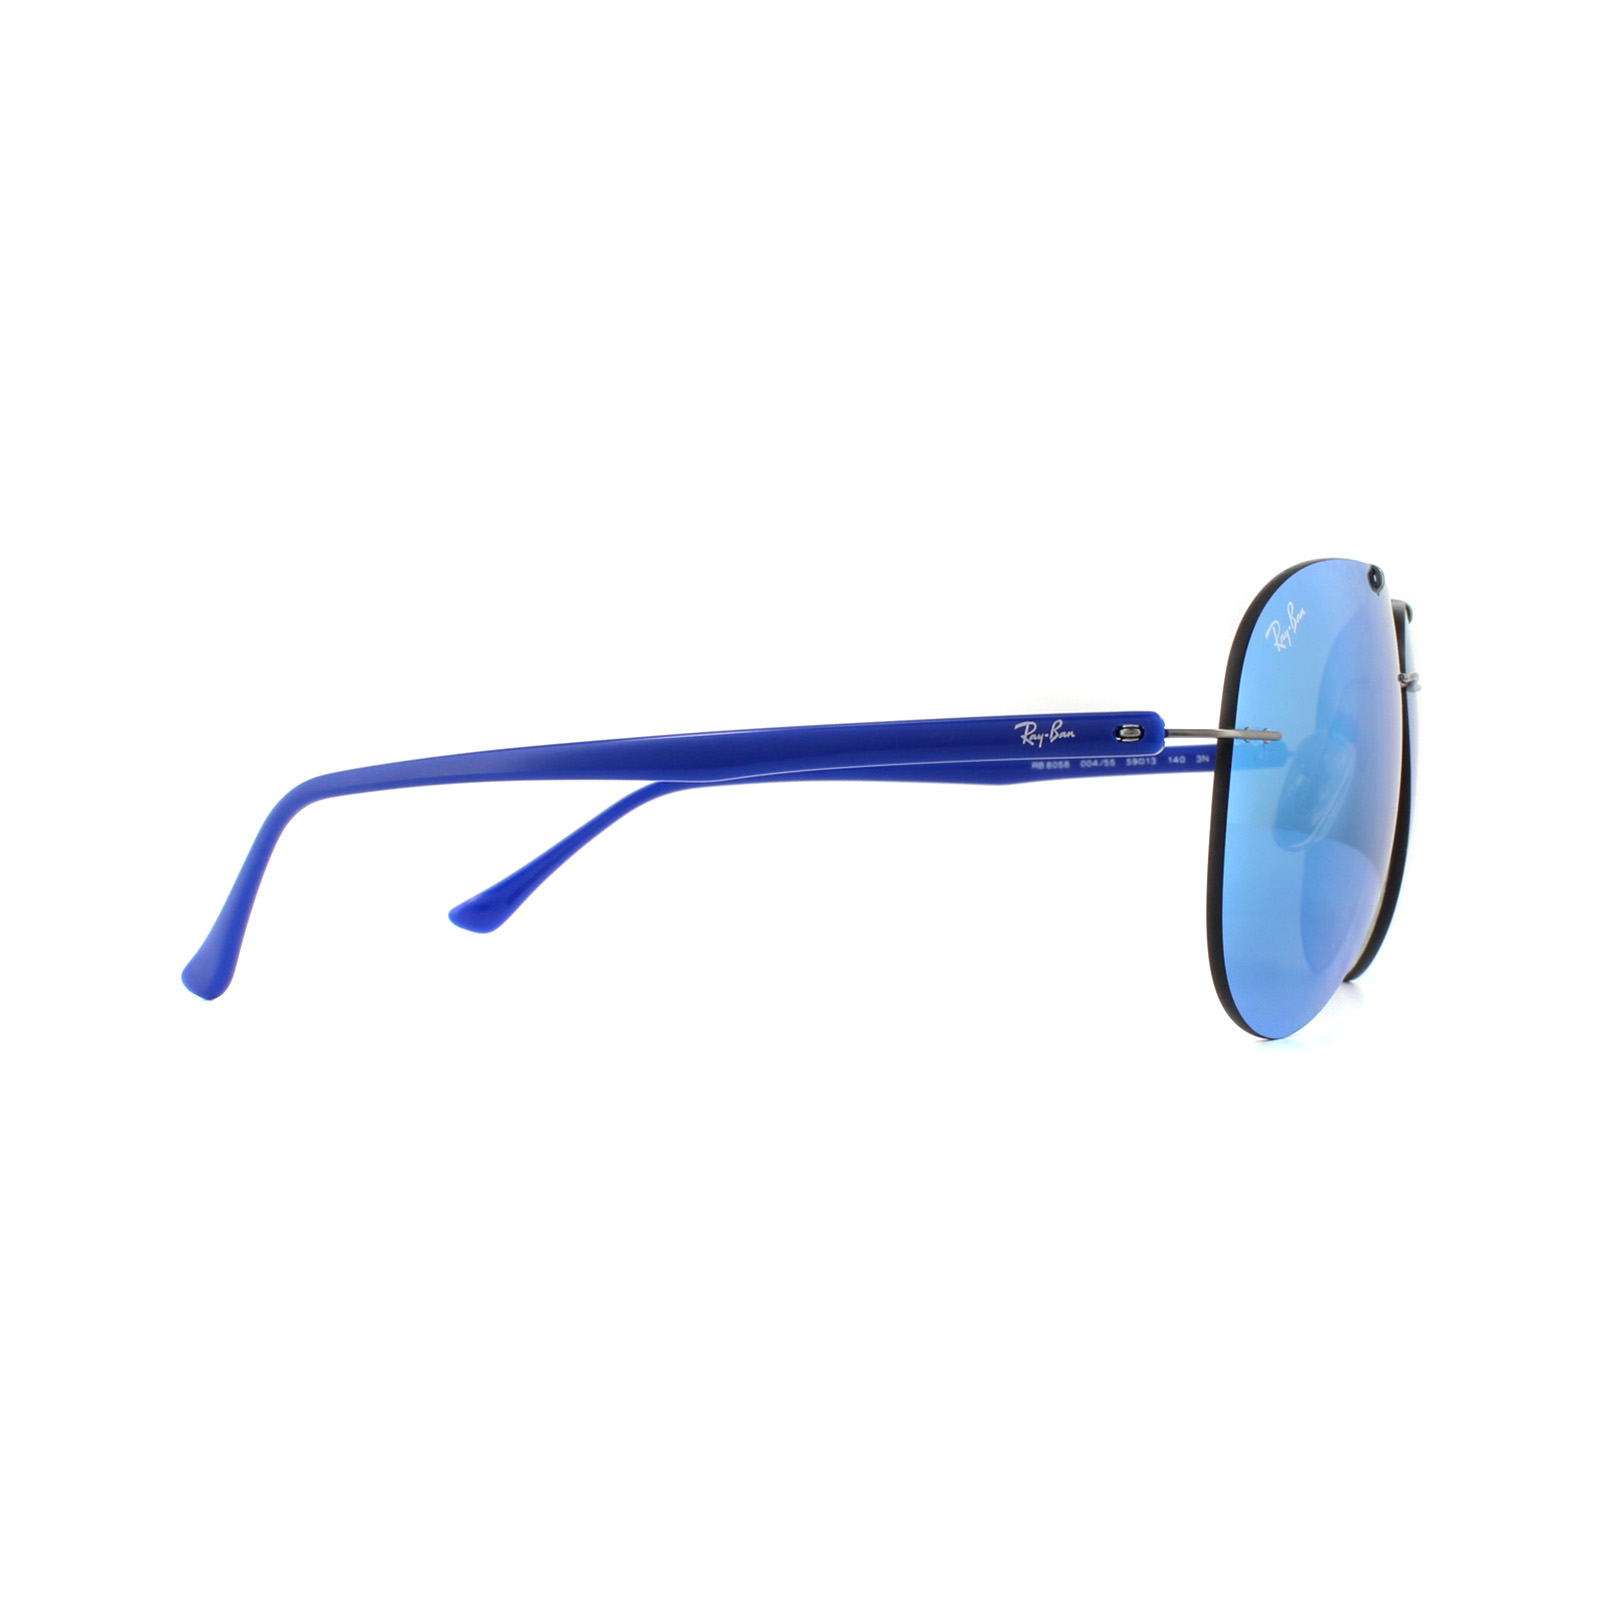 d1105e601c7 Ray-Ban Sunglasses 8058 004 55 Gunmetal Blue Mirror 8053672656367